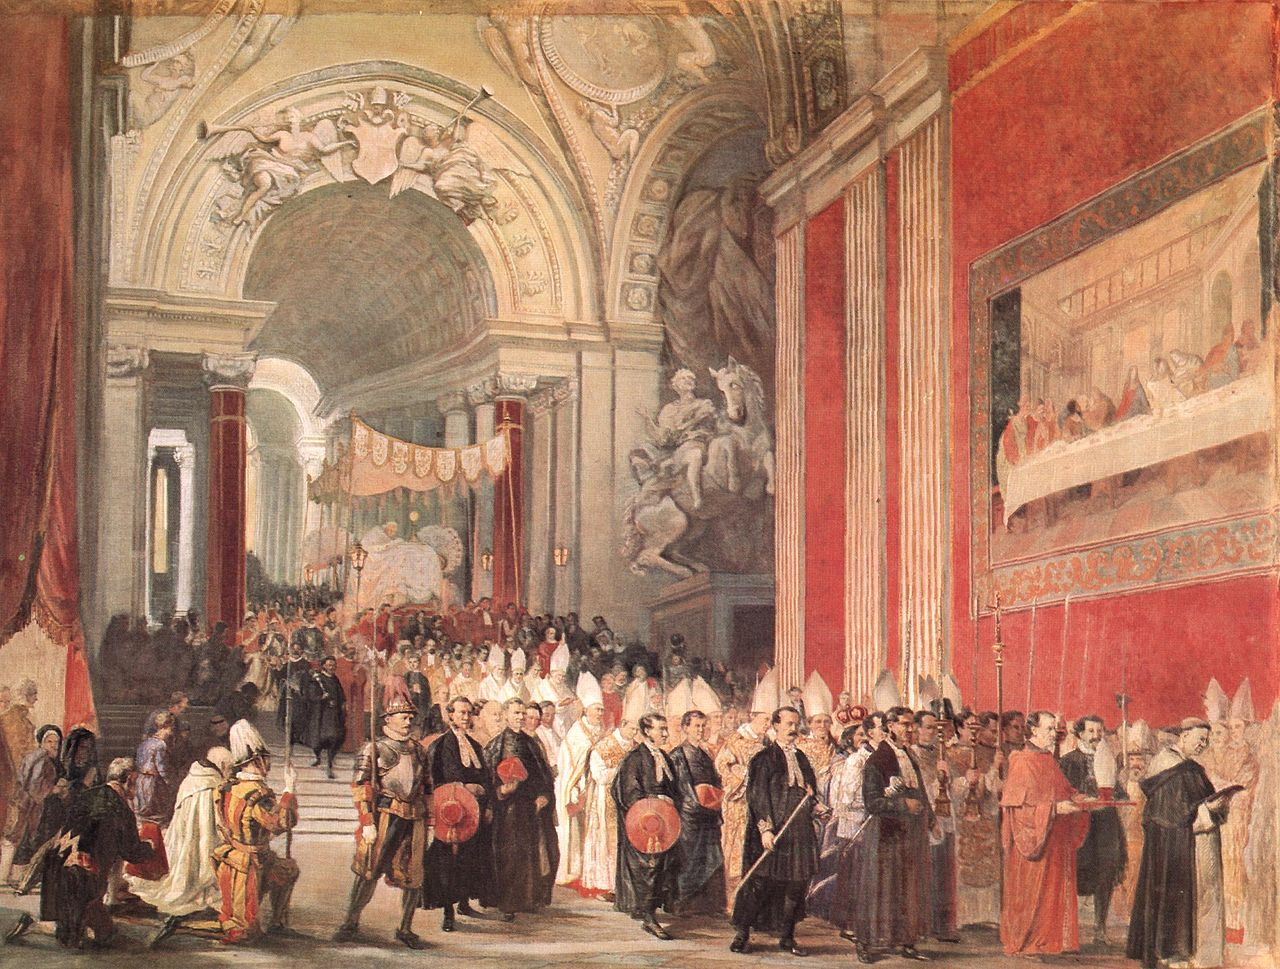 COMPARANDUM: Corpus Christi Procession with Pope Gregory XVI in the Vatican (with The Vision of Constantine on the background), 1840, Ferdinando Cavalleri